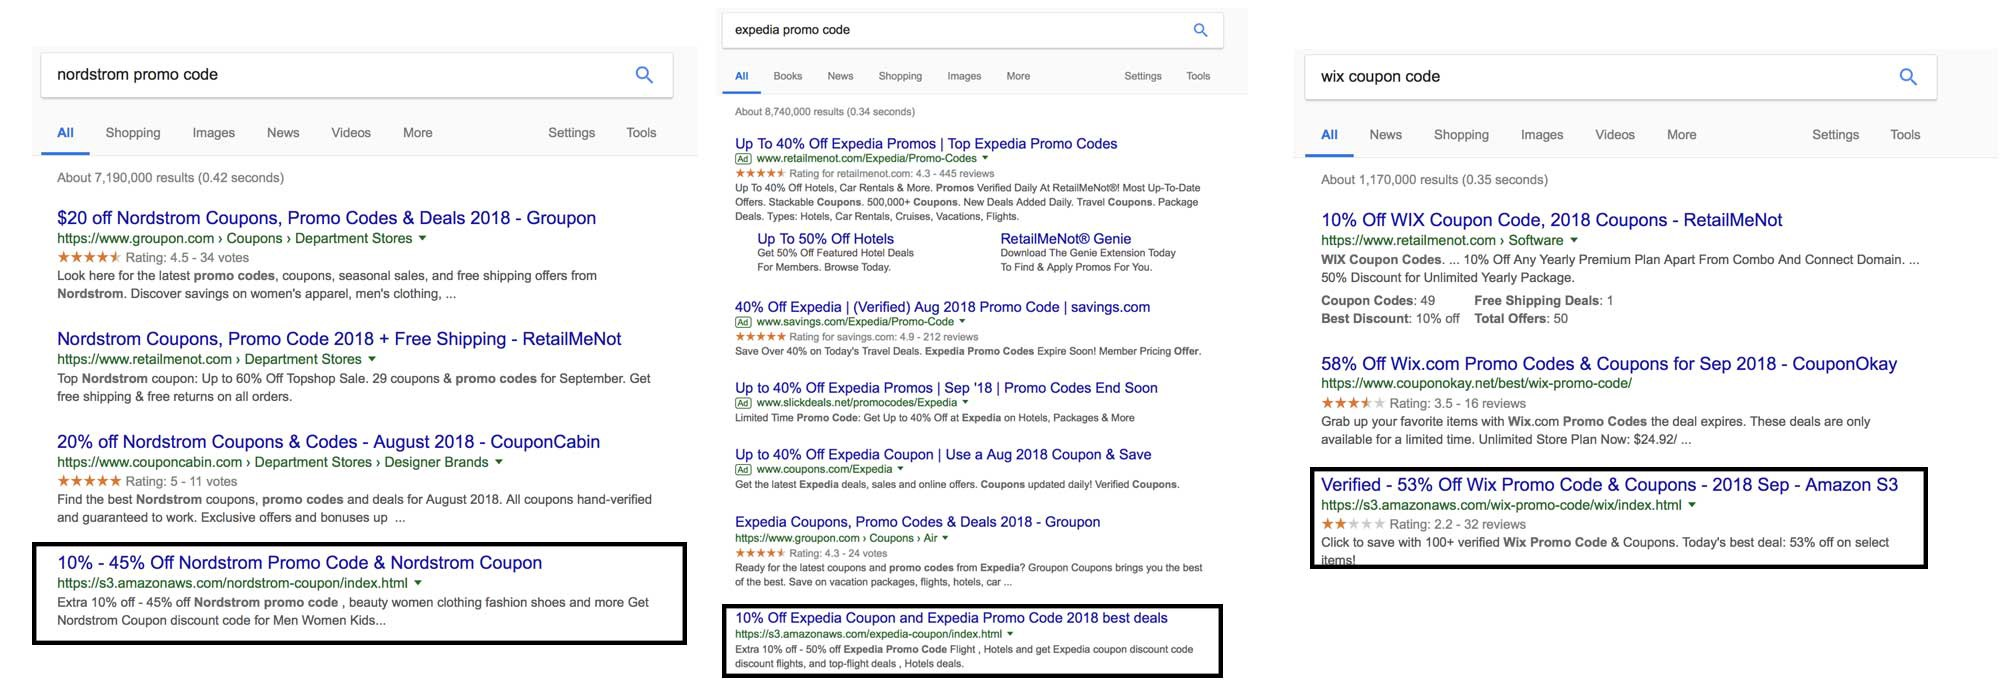 How One Website Exploited Amazon S3 to Outrank Everyone on Google